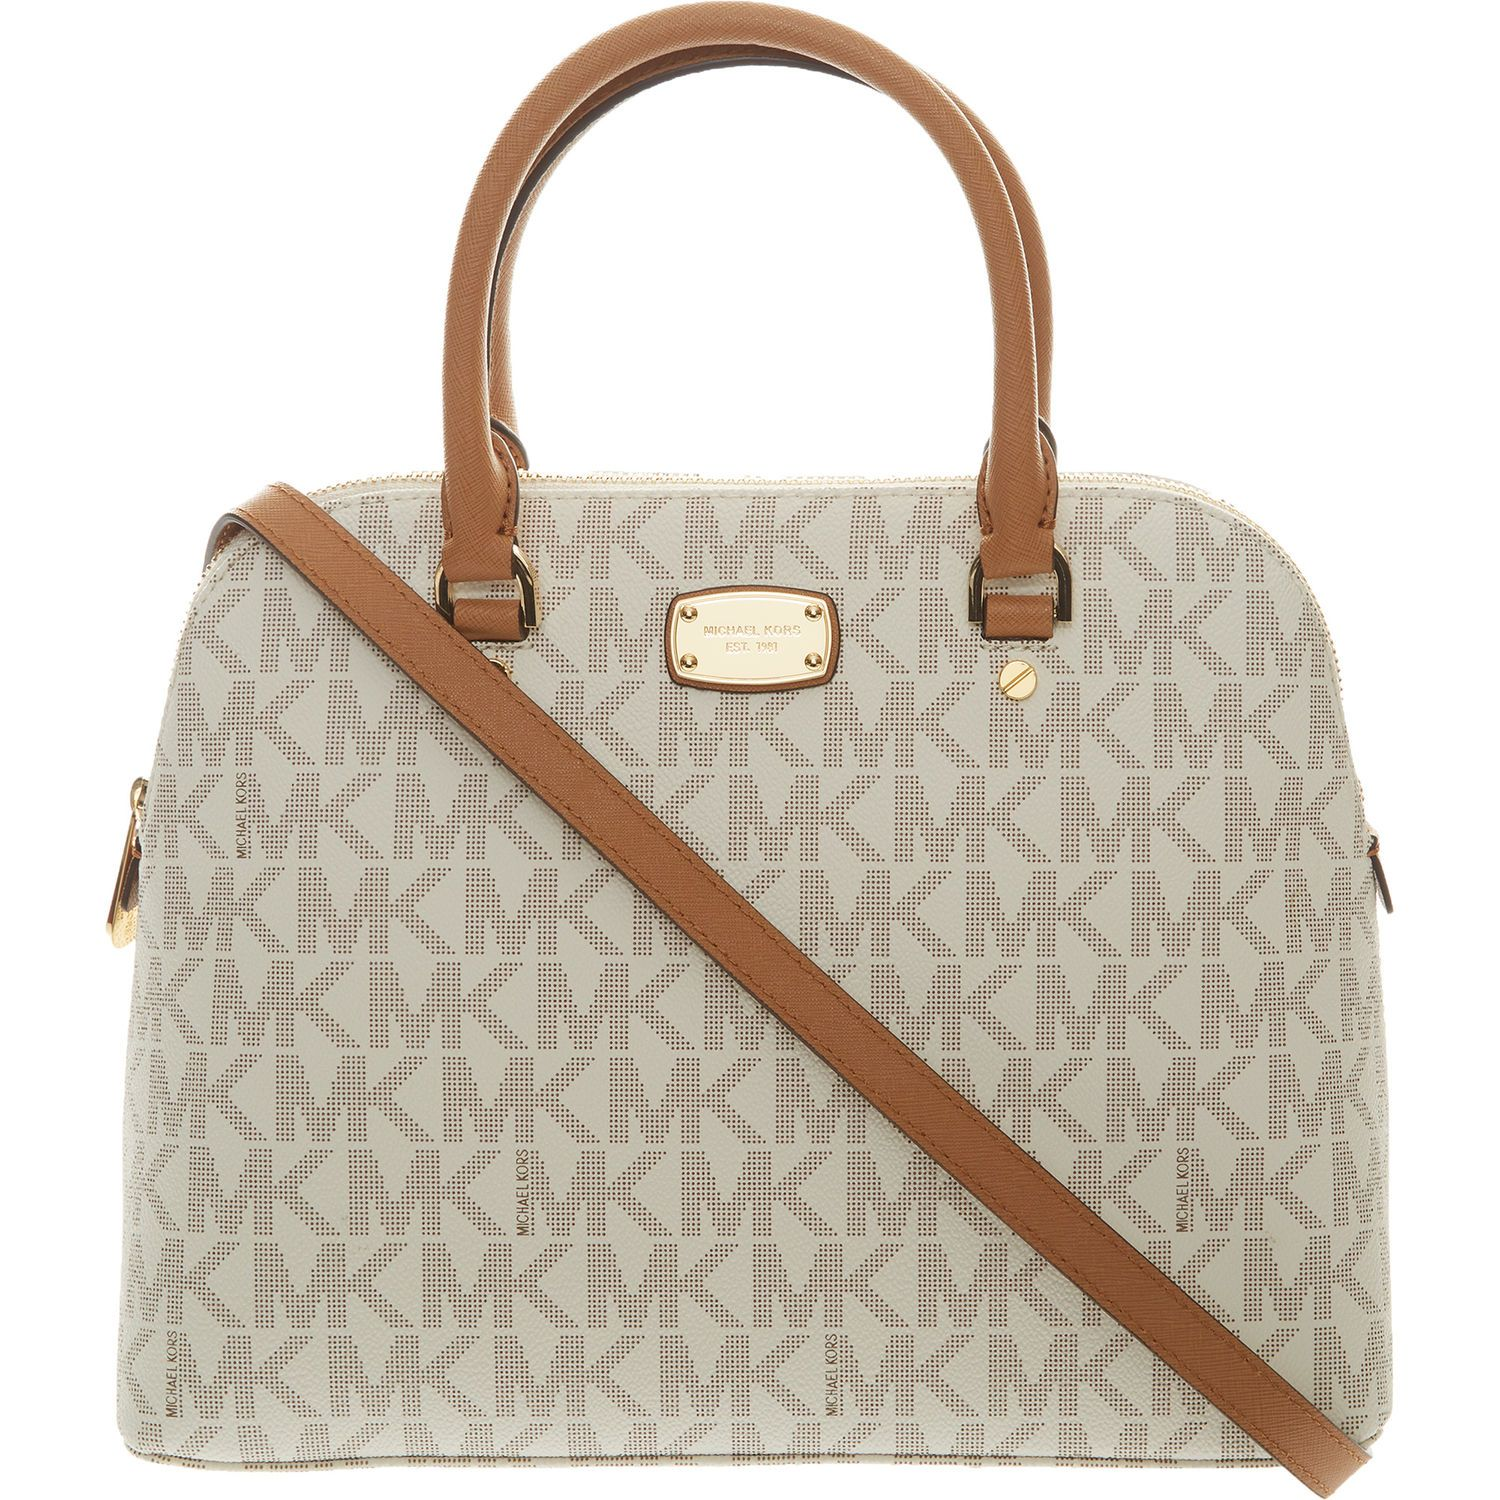 Michael Kors Bag for under £100!! Vanilla   Gold Tone Leather Cindy Satchel  - Handbags - Accessories - Women 8e035af183